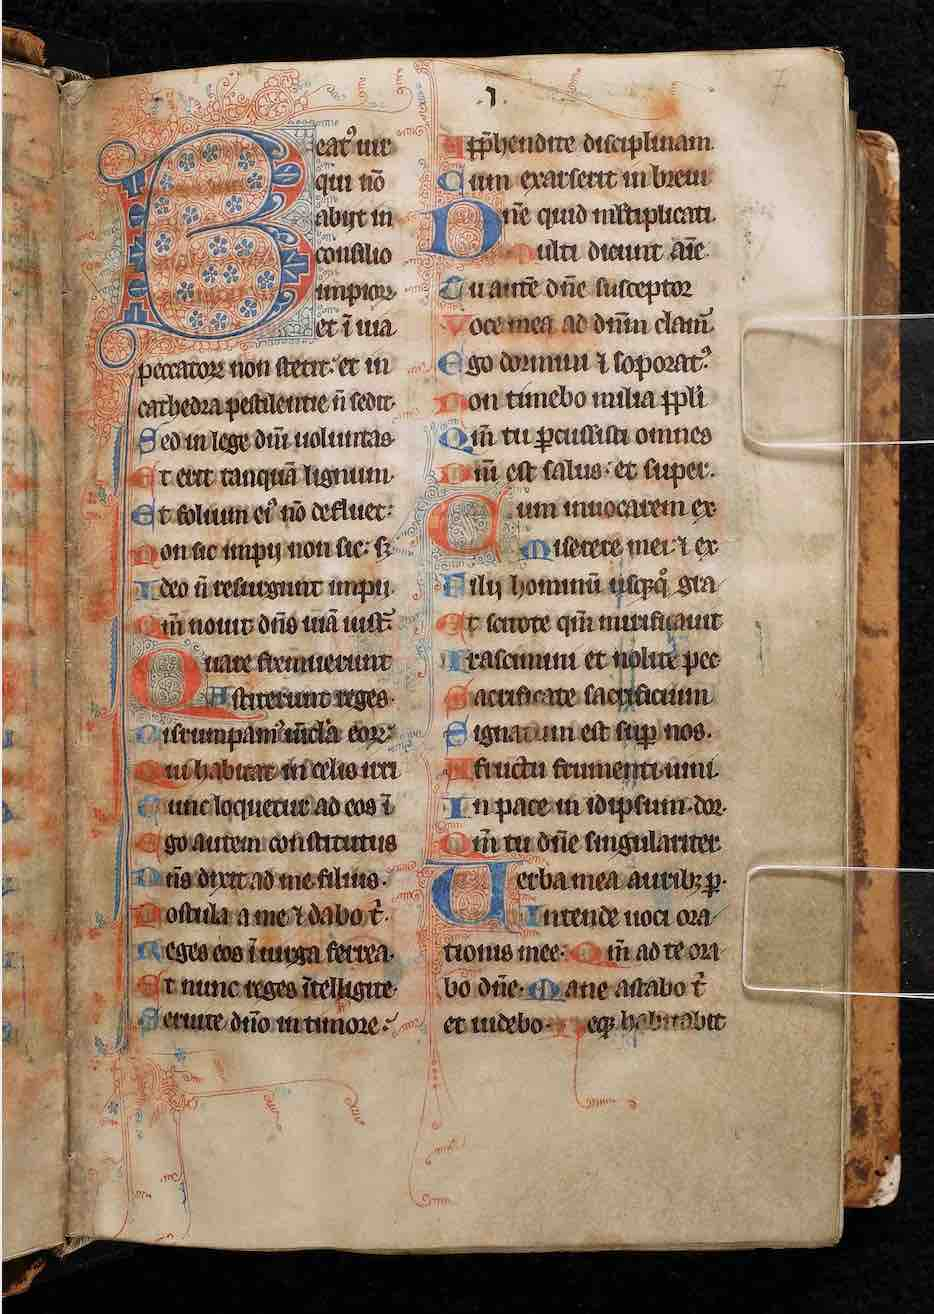 Bethune Breviary-Missal from 13th/14th-c. France (<a href='https://w3id.org/vhmml/readingRoom/view/511651'>Bethune Ms. 2</a>)